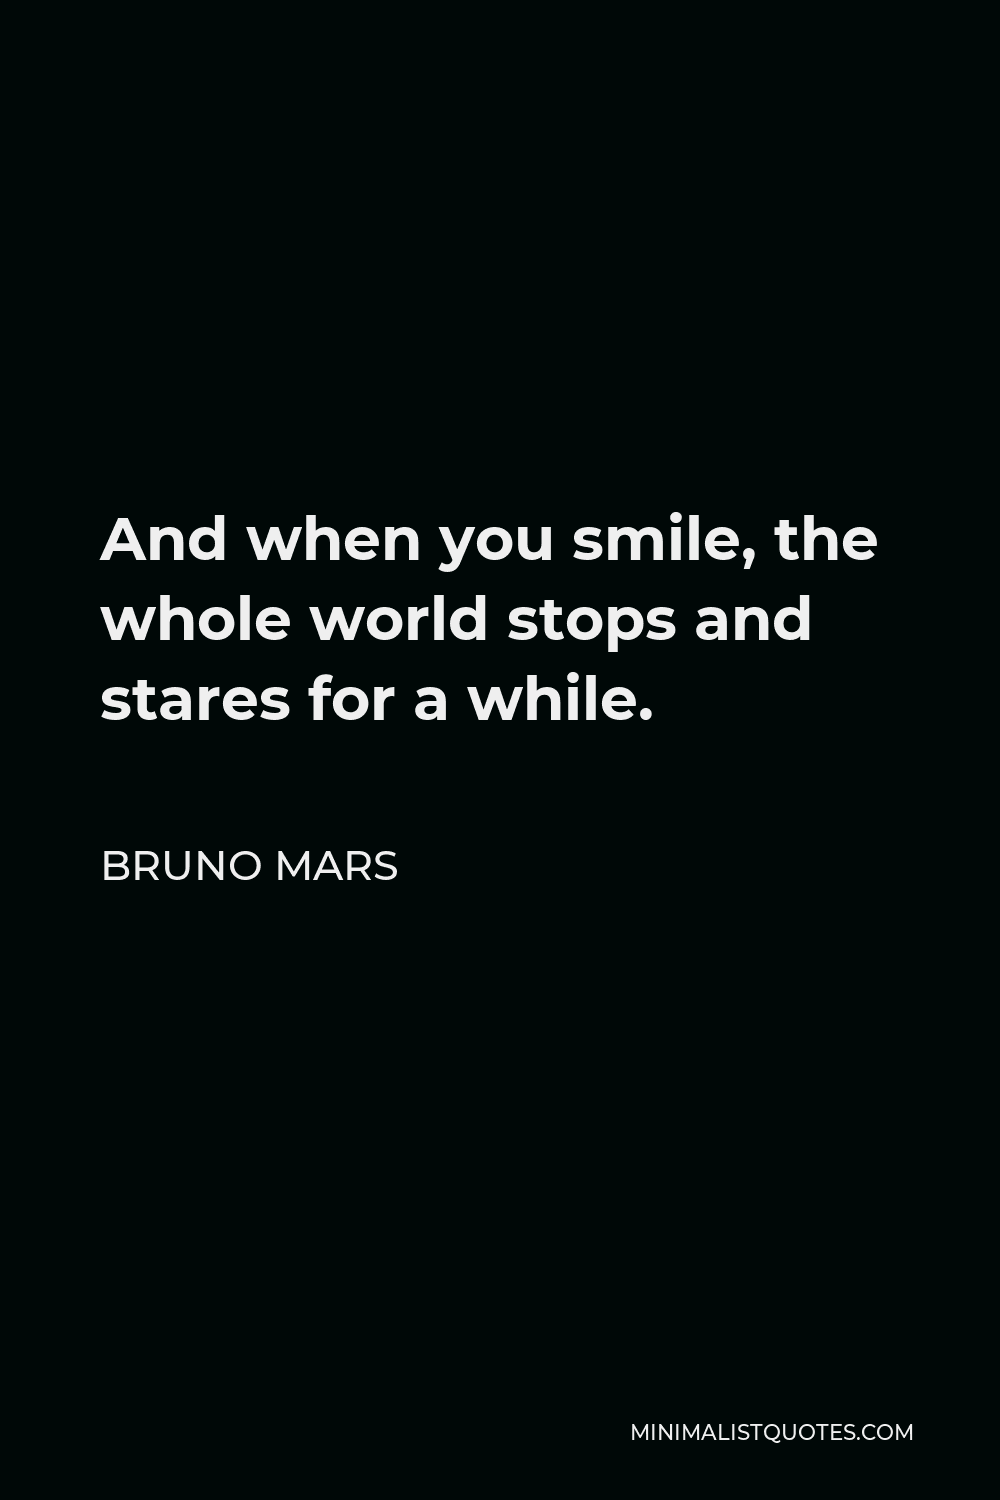 Bruno Mars Quote - And when you smile, the whole world stops and stares for a while.